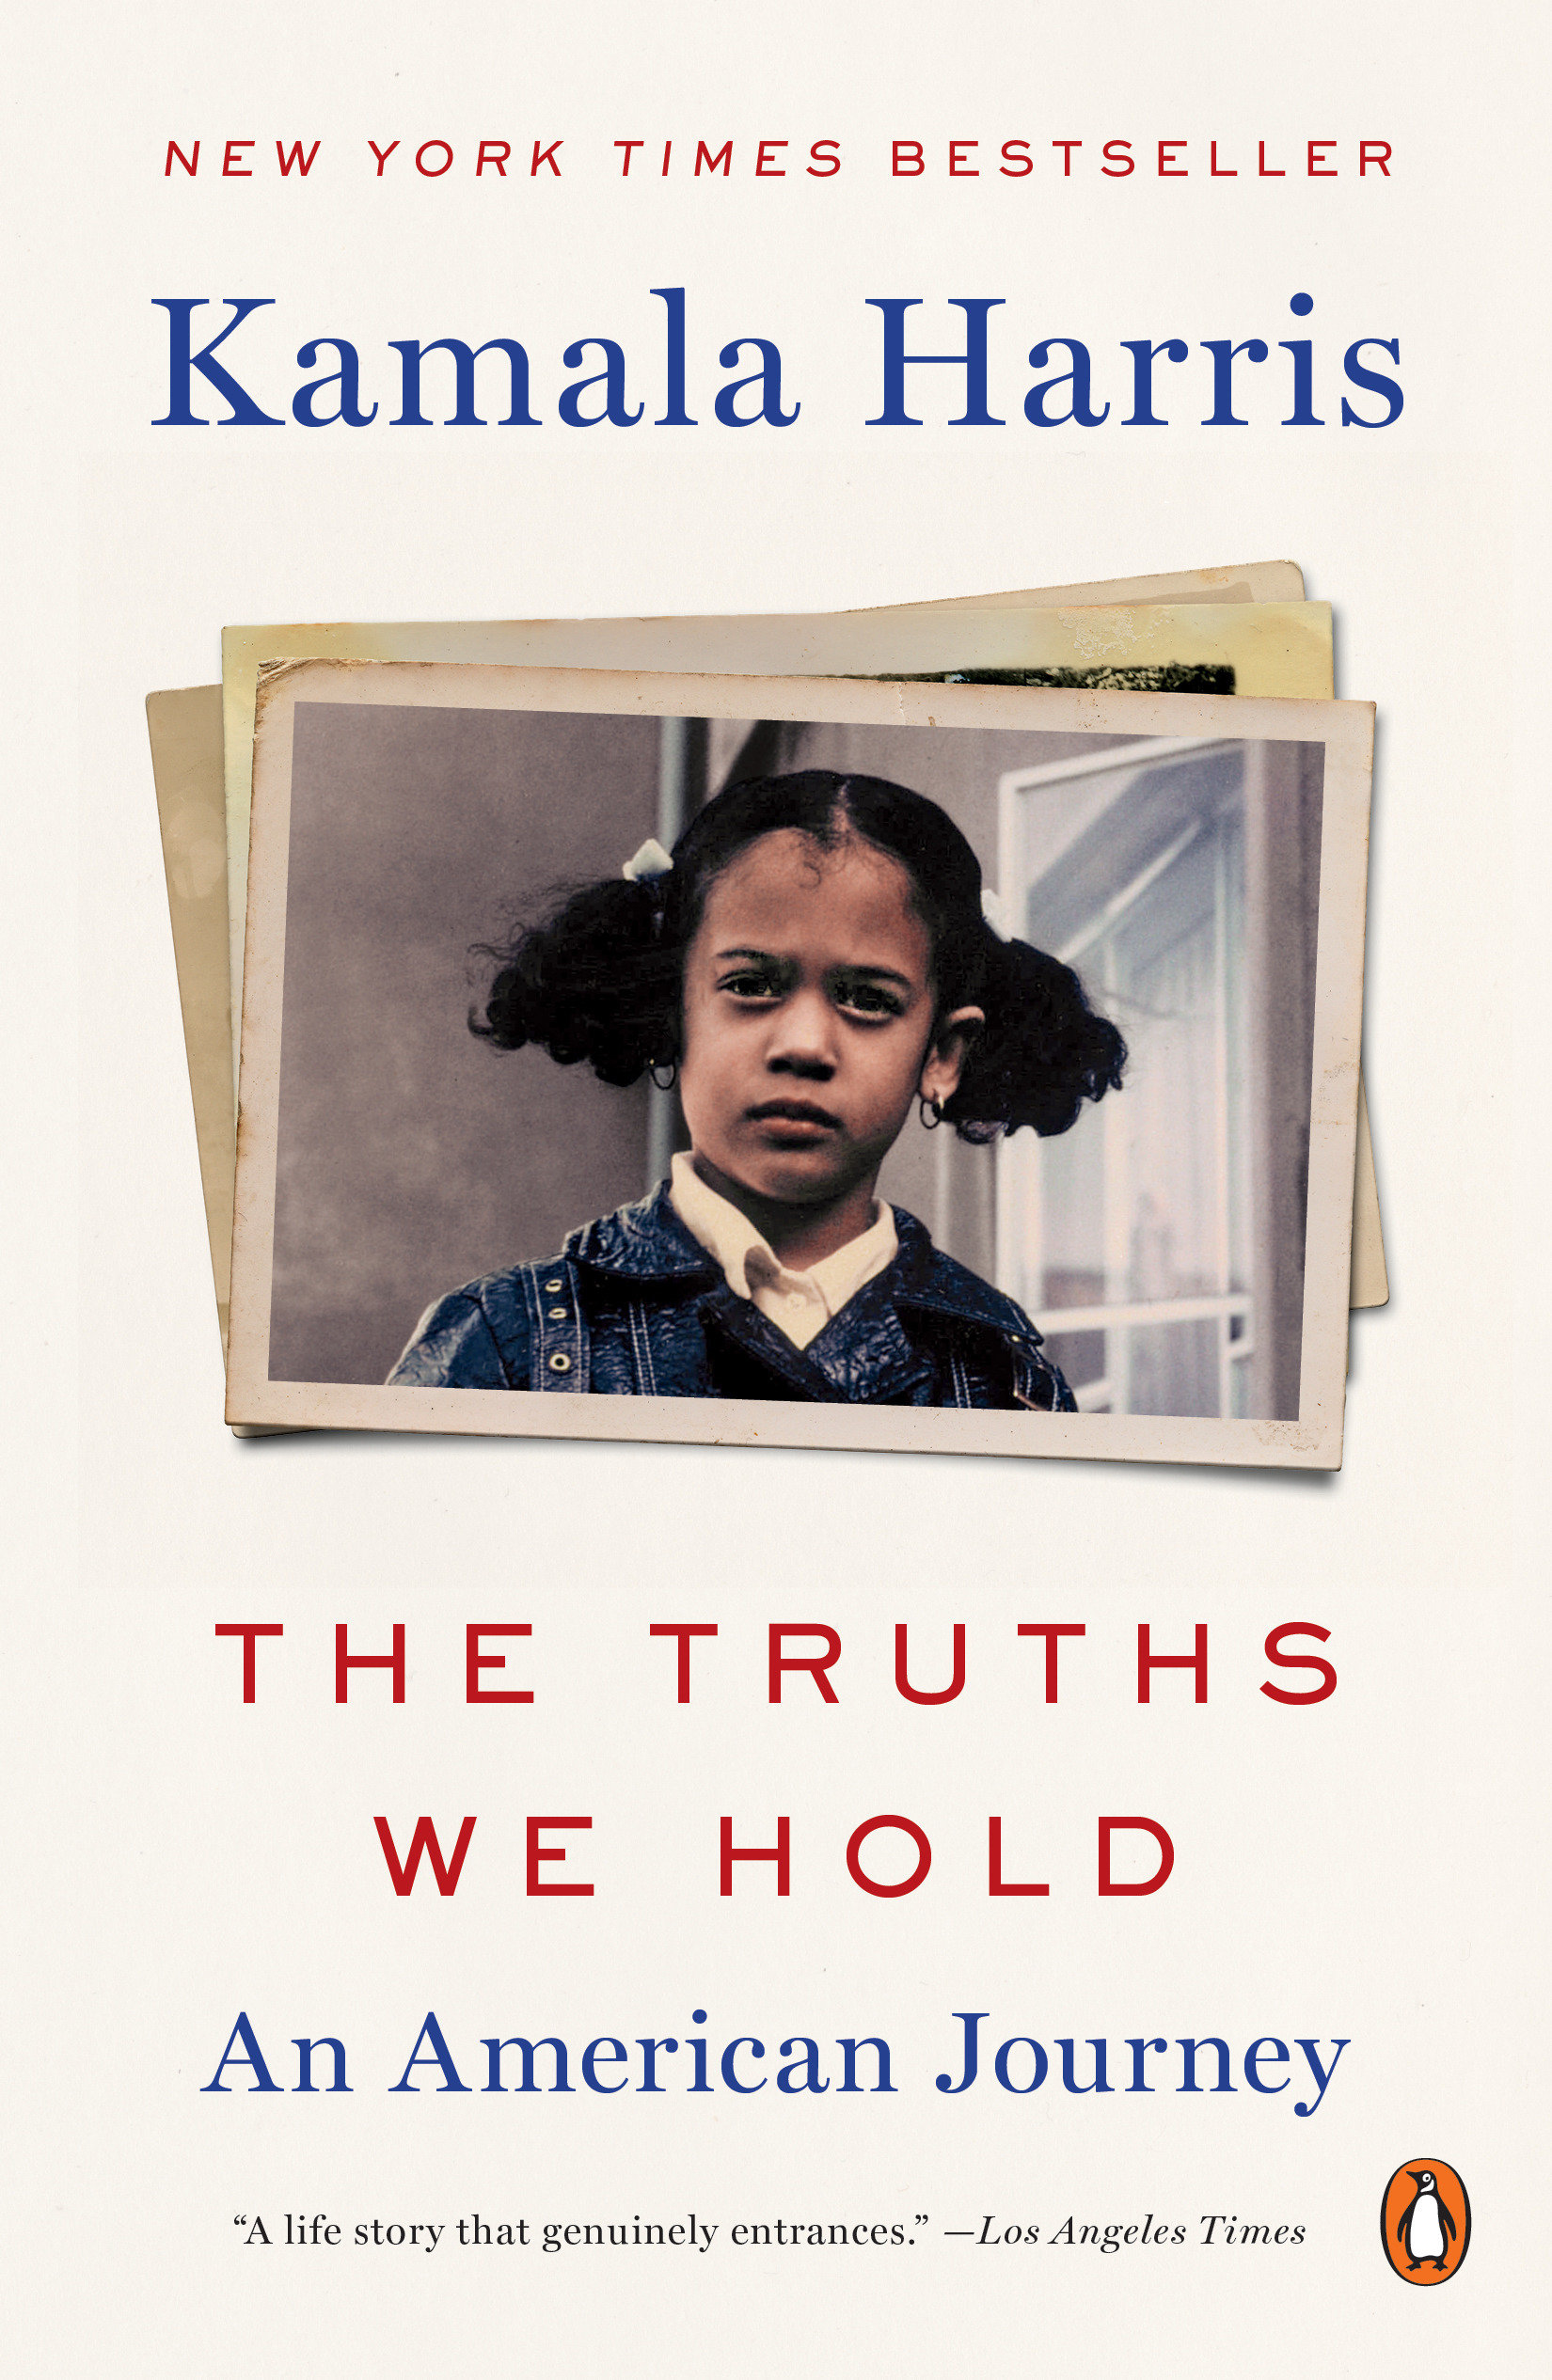 The truths we hold an American journey cover image